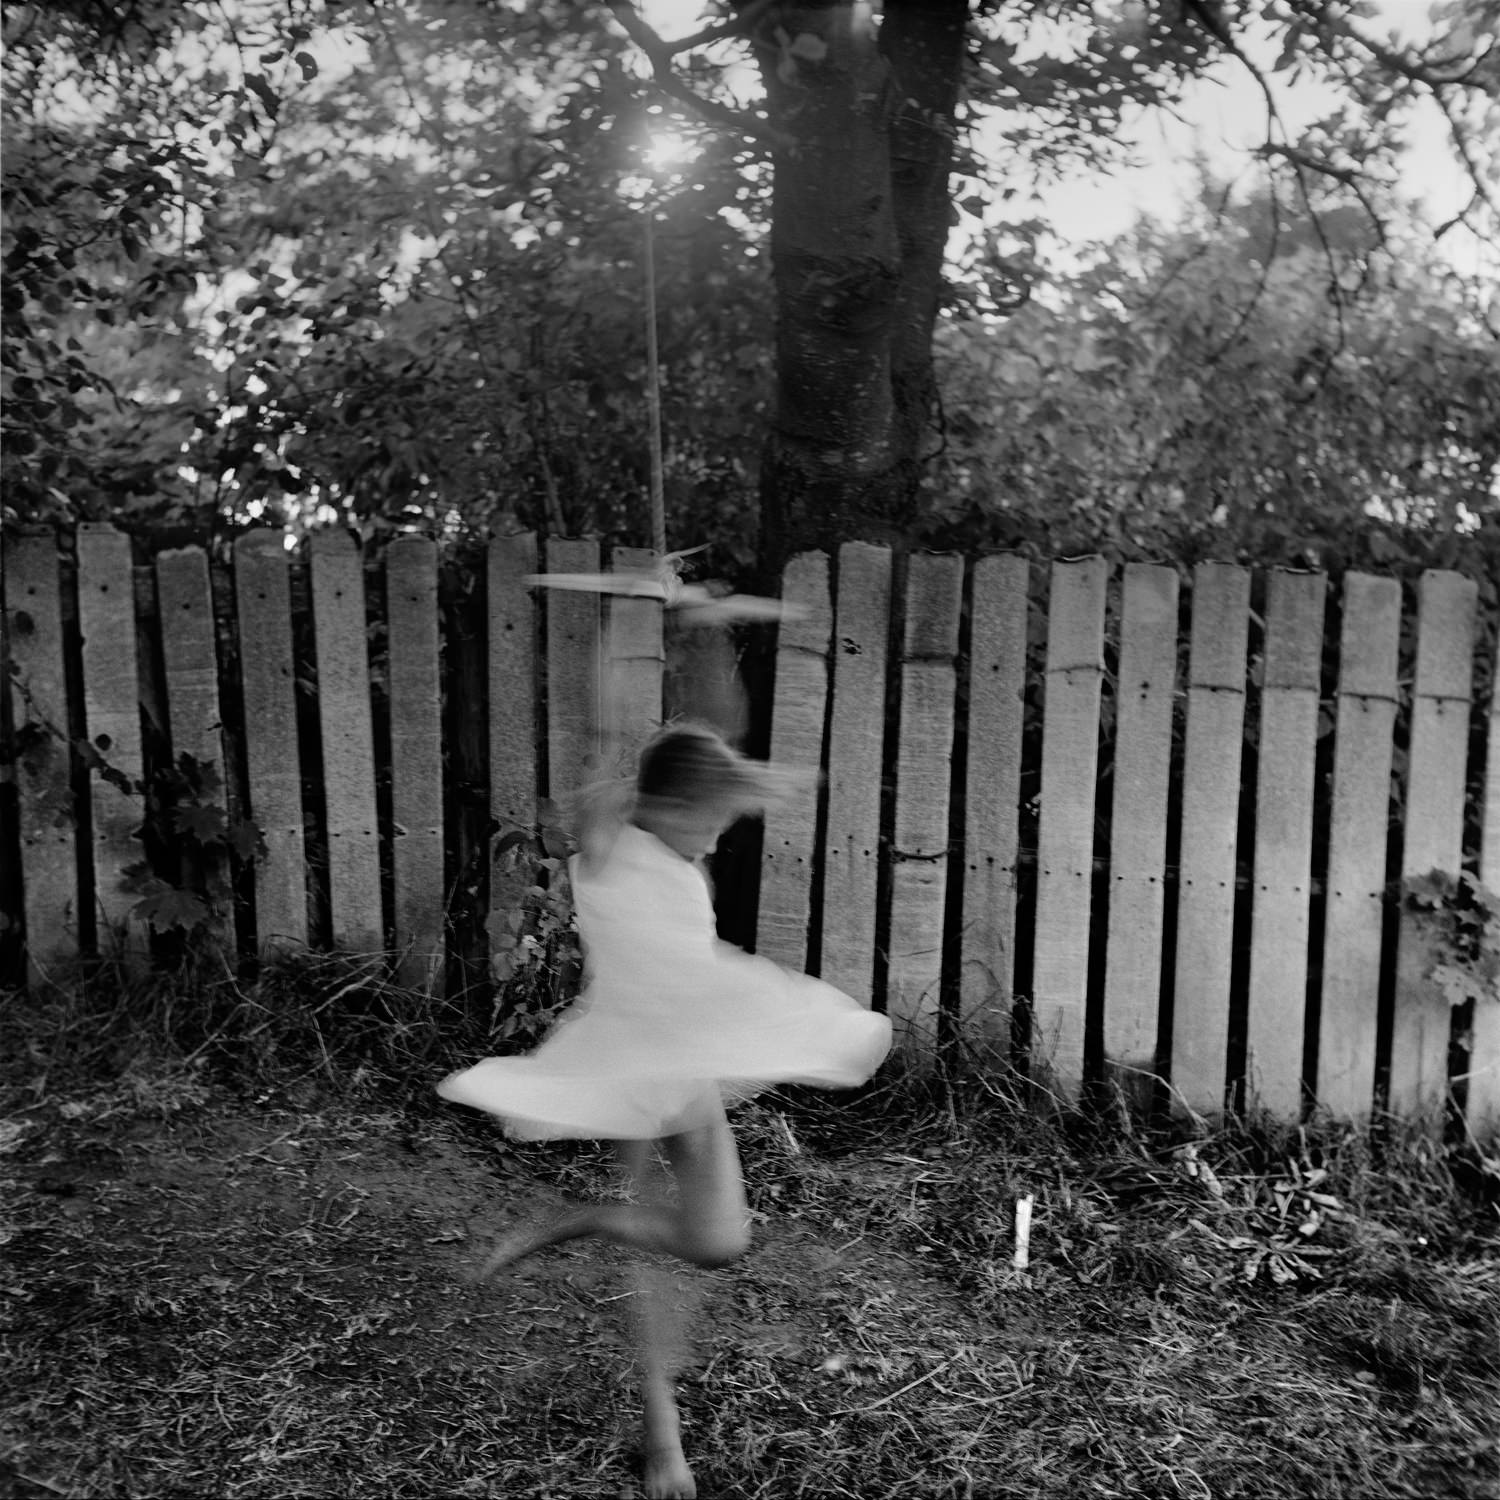 Black and white portrait of girl in light dress swirling on rope under an apple tree with fence in the background in the village, taken on film and medium format camera Yashica Mat 124G